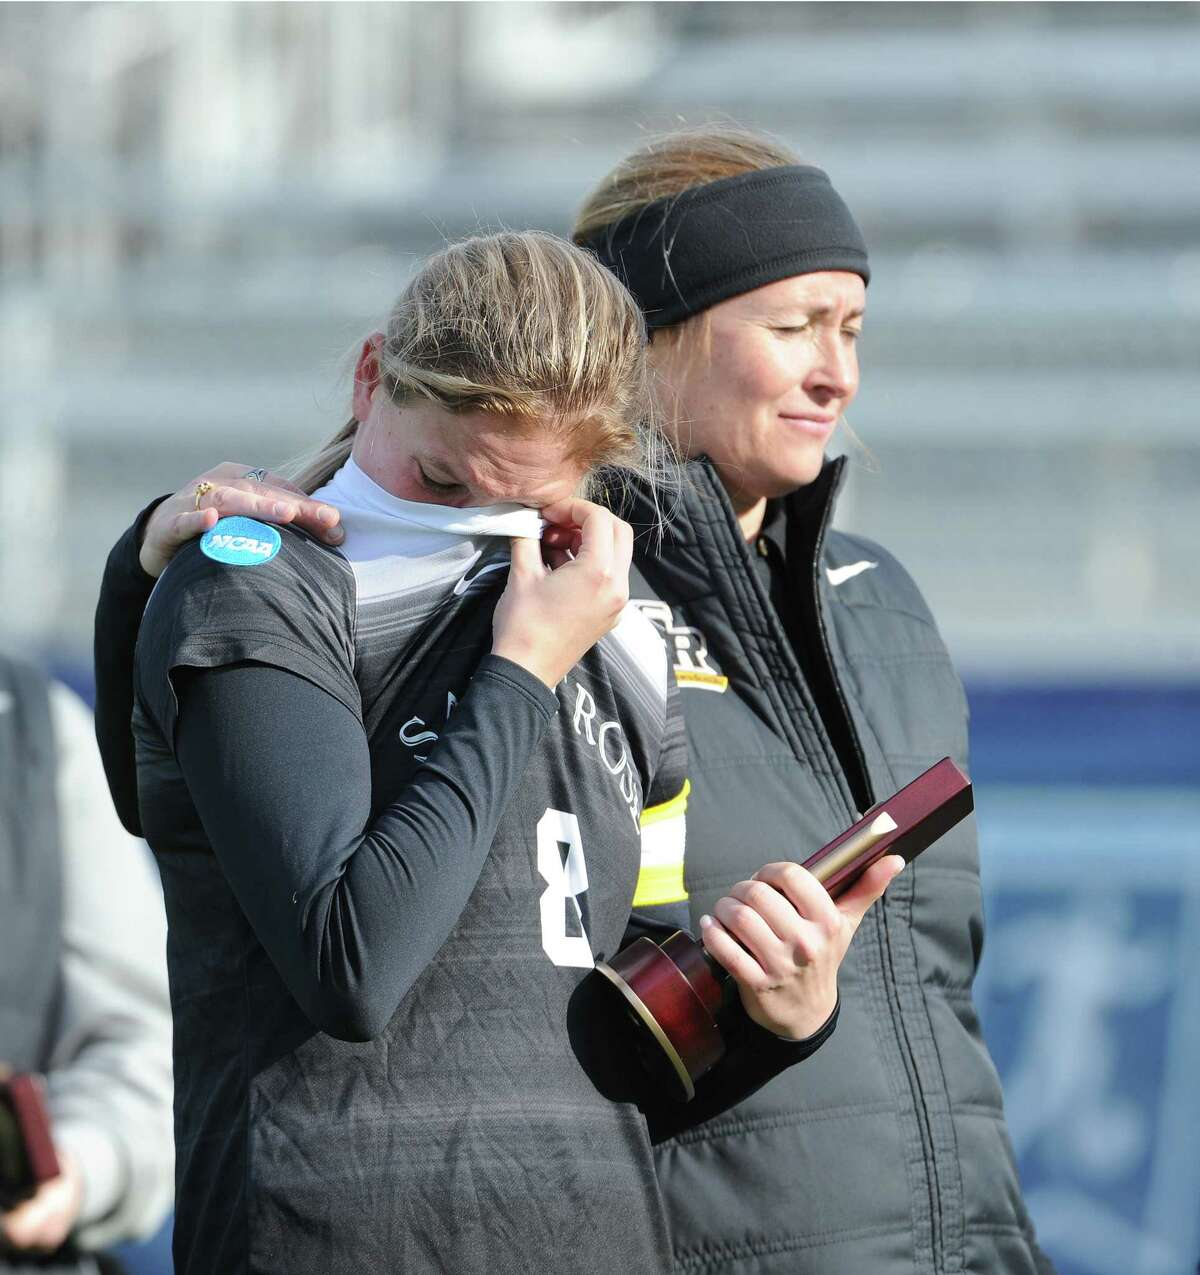 Saint Rose forward Morgan Burchhardt (left) is comforted by head coach Laurie Darling Gutheil after their team fell 3-2 to Grand Valley State in the DII Womena€™s Soccer semi-finals on Thursday, Dec. 12, 2019, at Highmark Stadium in Pittsburgh, Pa. (Philip Pavely/ Special to the Times Union)